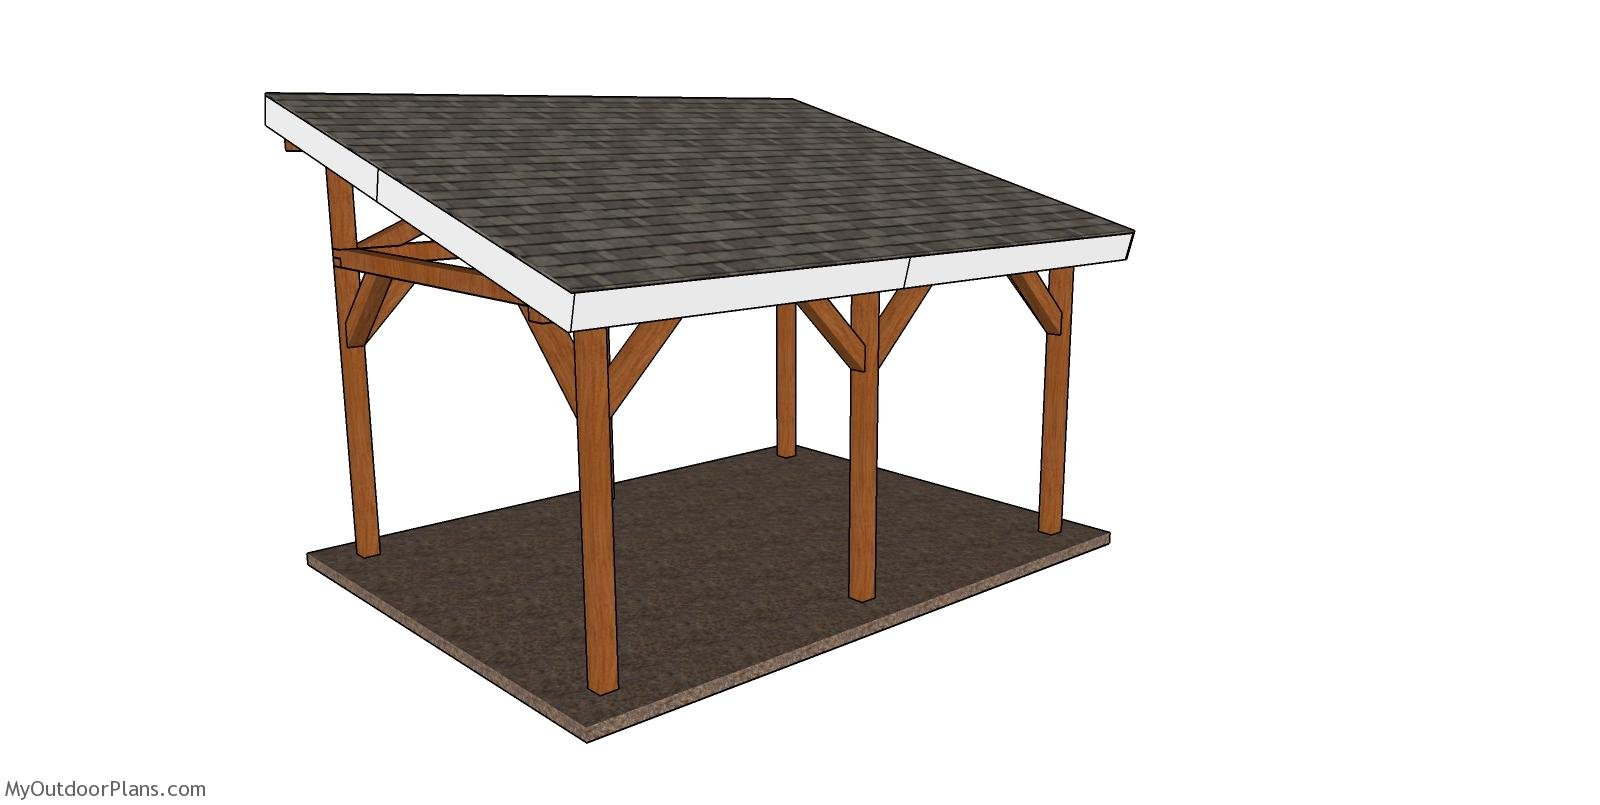 12x16 Lean to Pavilion Plans